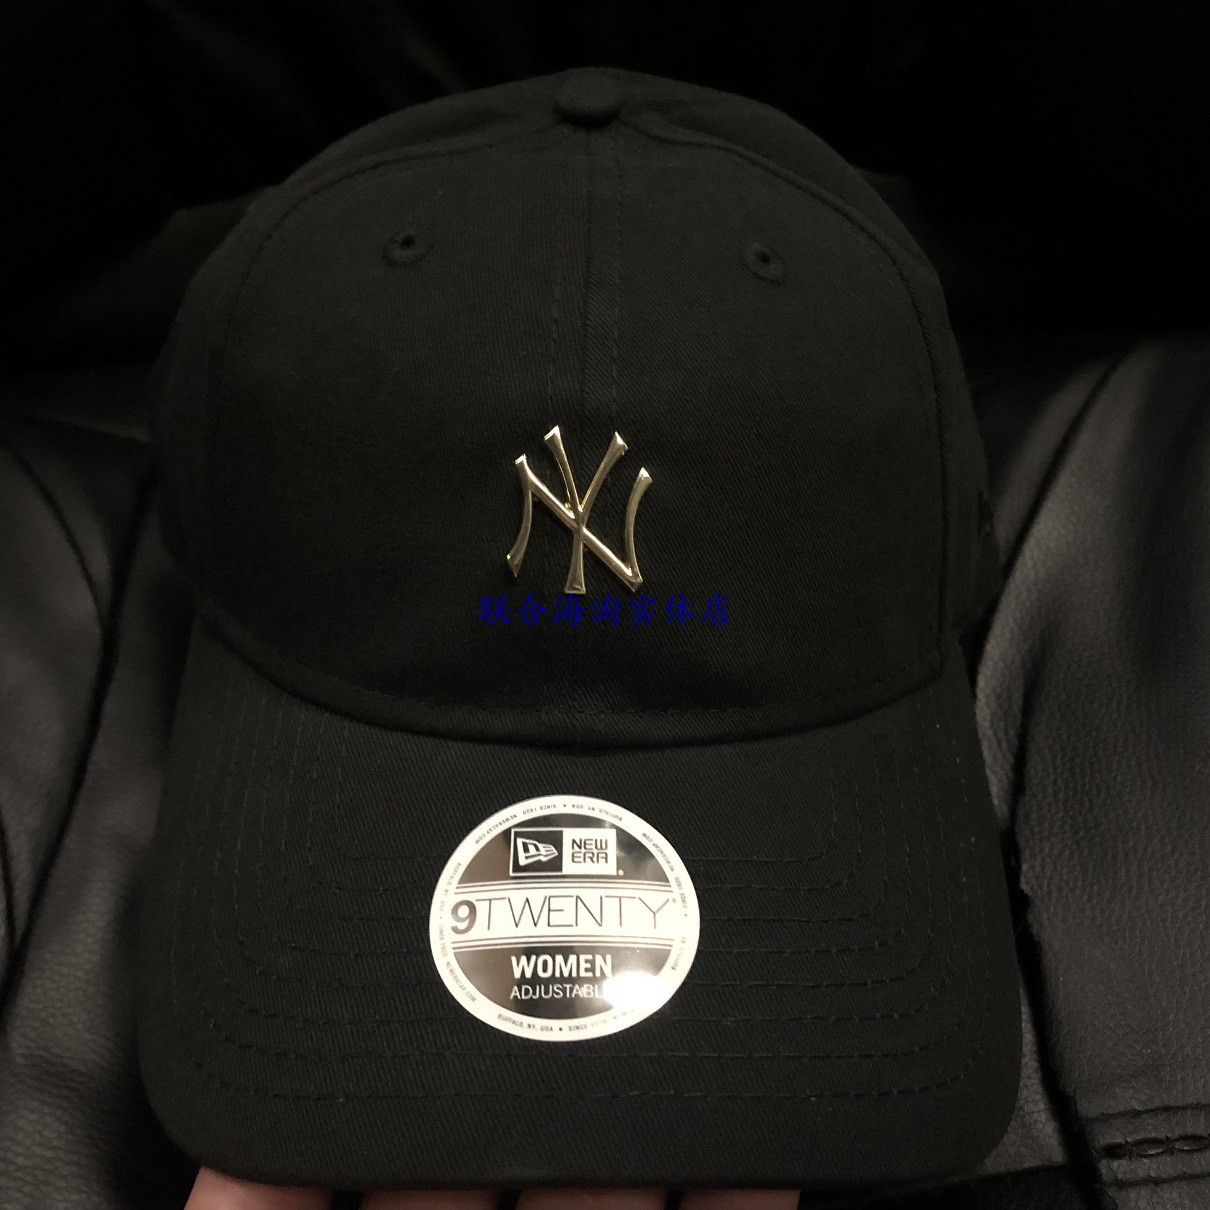 ... NEW ERA Yankees small NY metal standard adjustable cap curved hat. Zoom  · lightbox moreview · lightbox moreview ... 304450944aa